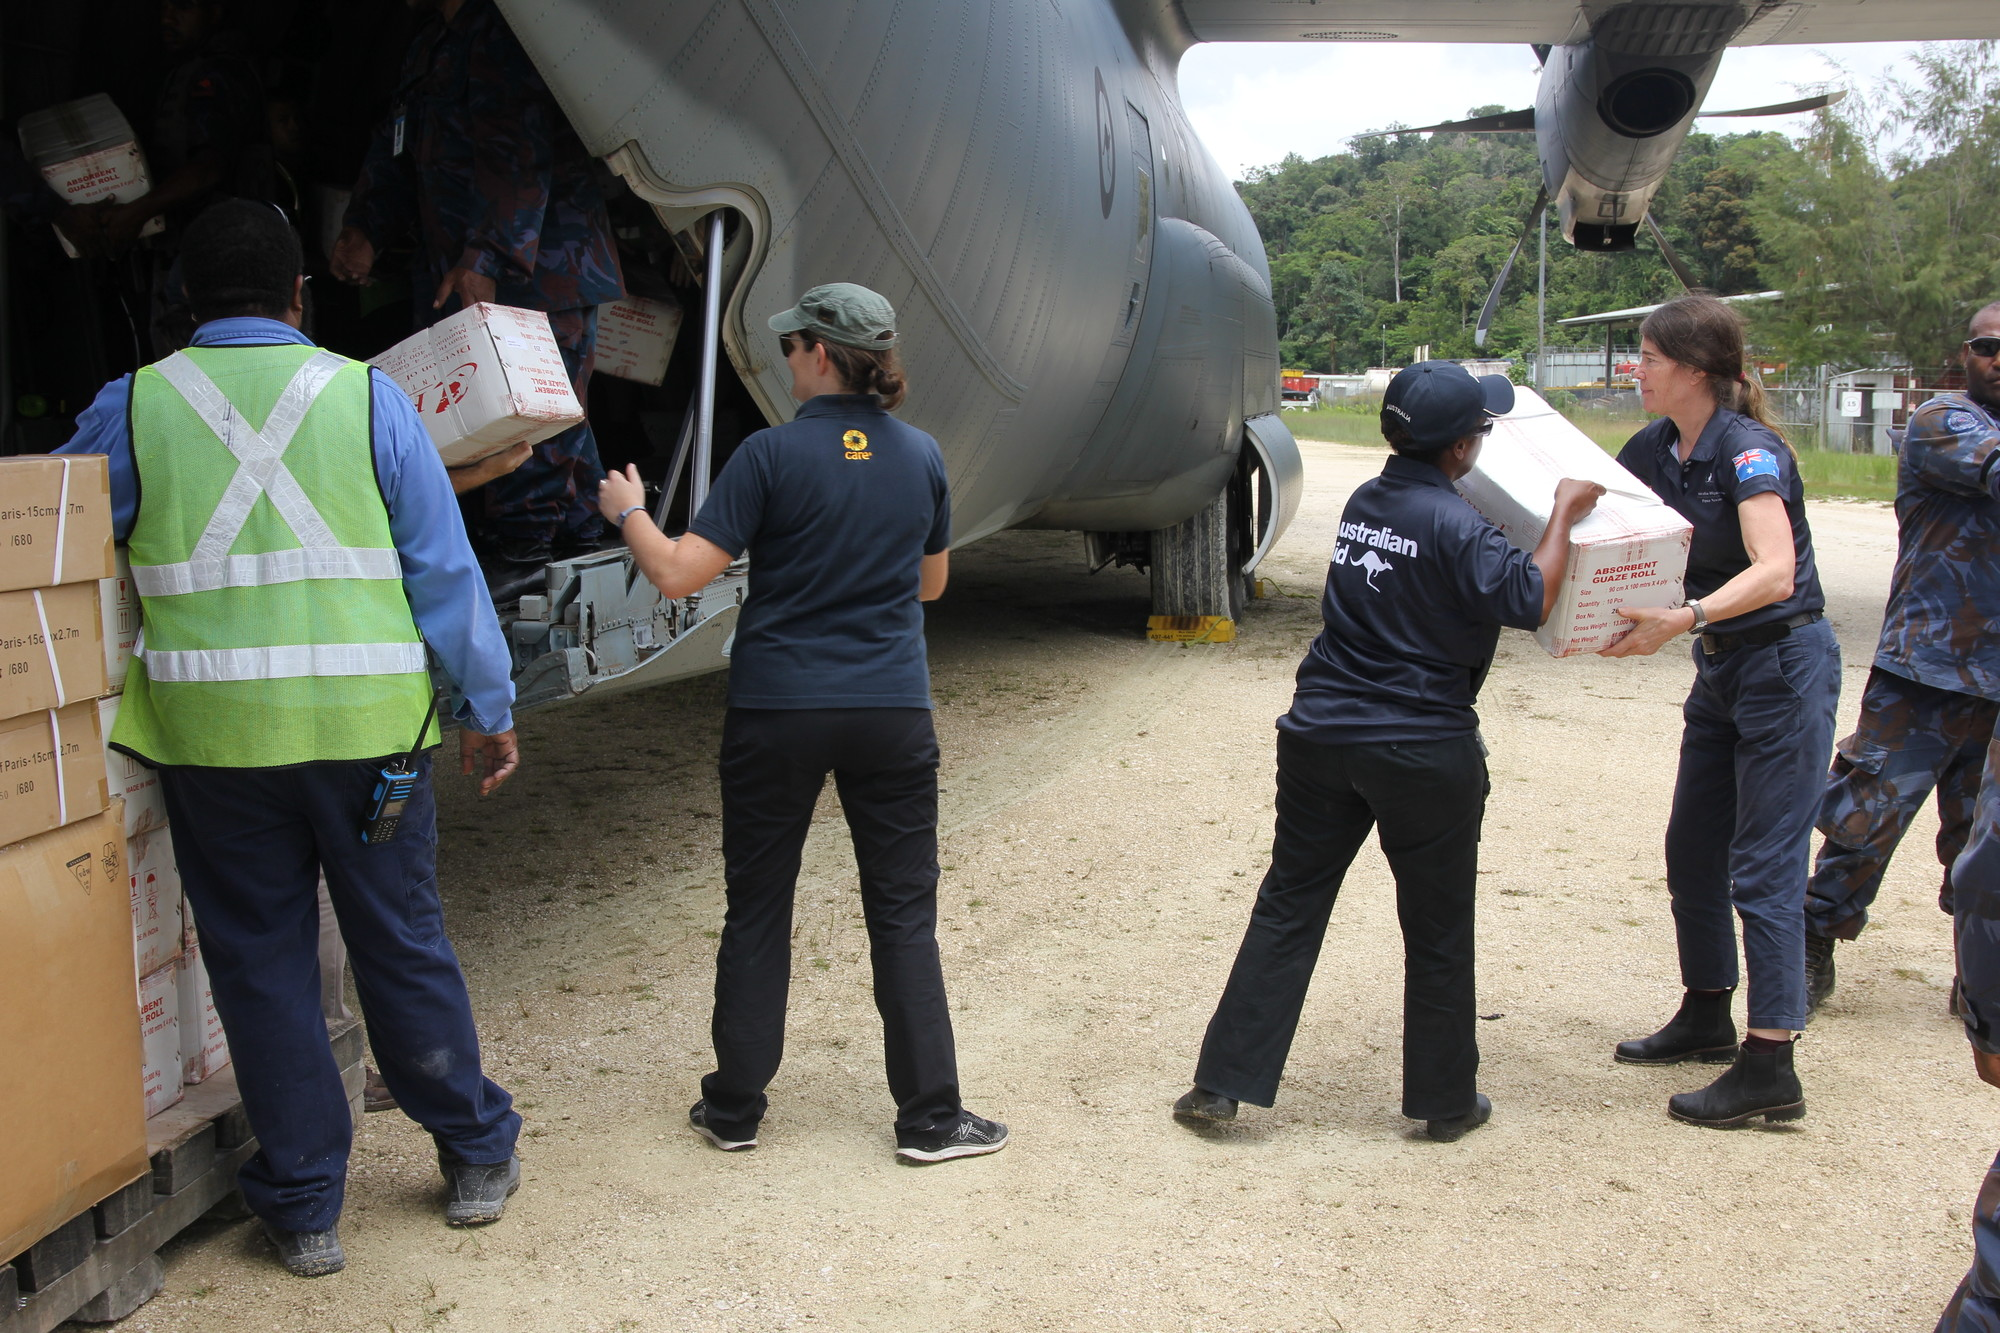 With the support of Australian Aid, CARE Australia's emergency response involved flying in and distributing relief items to families in urgent need in the earthquake-affected areas. Credit: John Hewat/CARE Australia